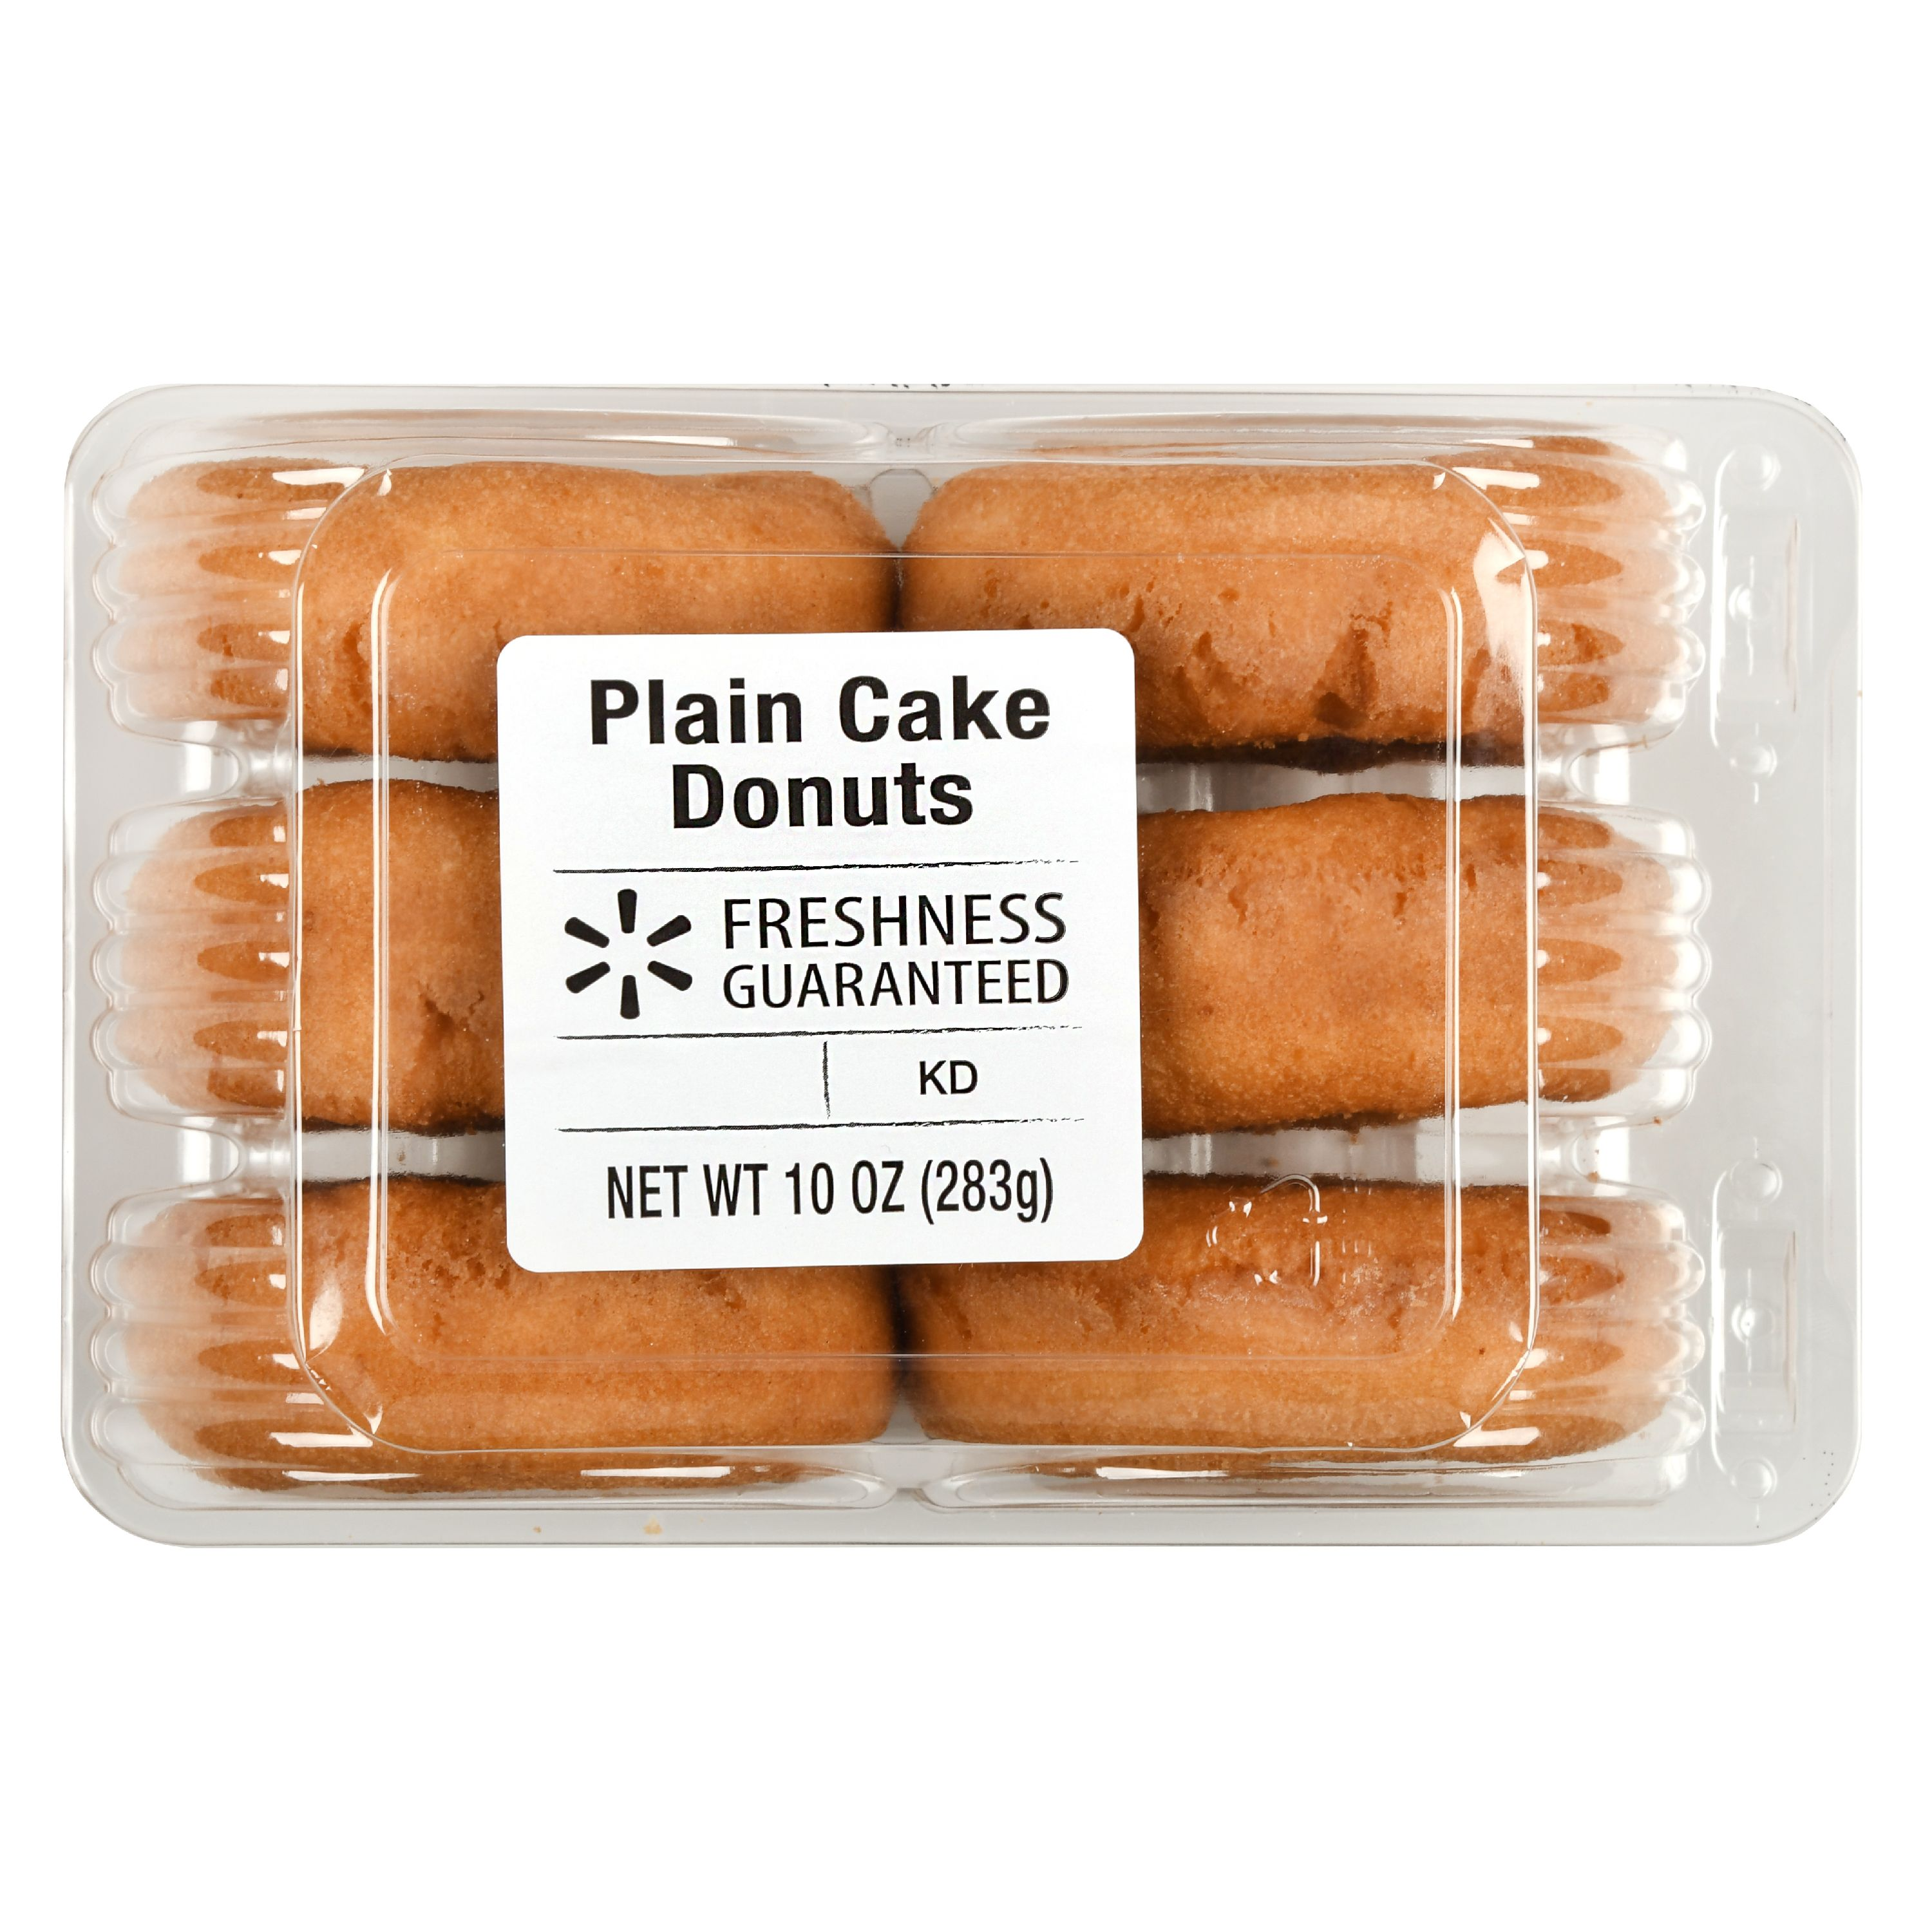 Freshness Guaranteed Plain Cake Donuts 10 Oz 6 Count